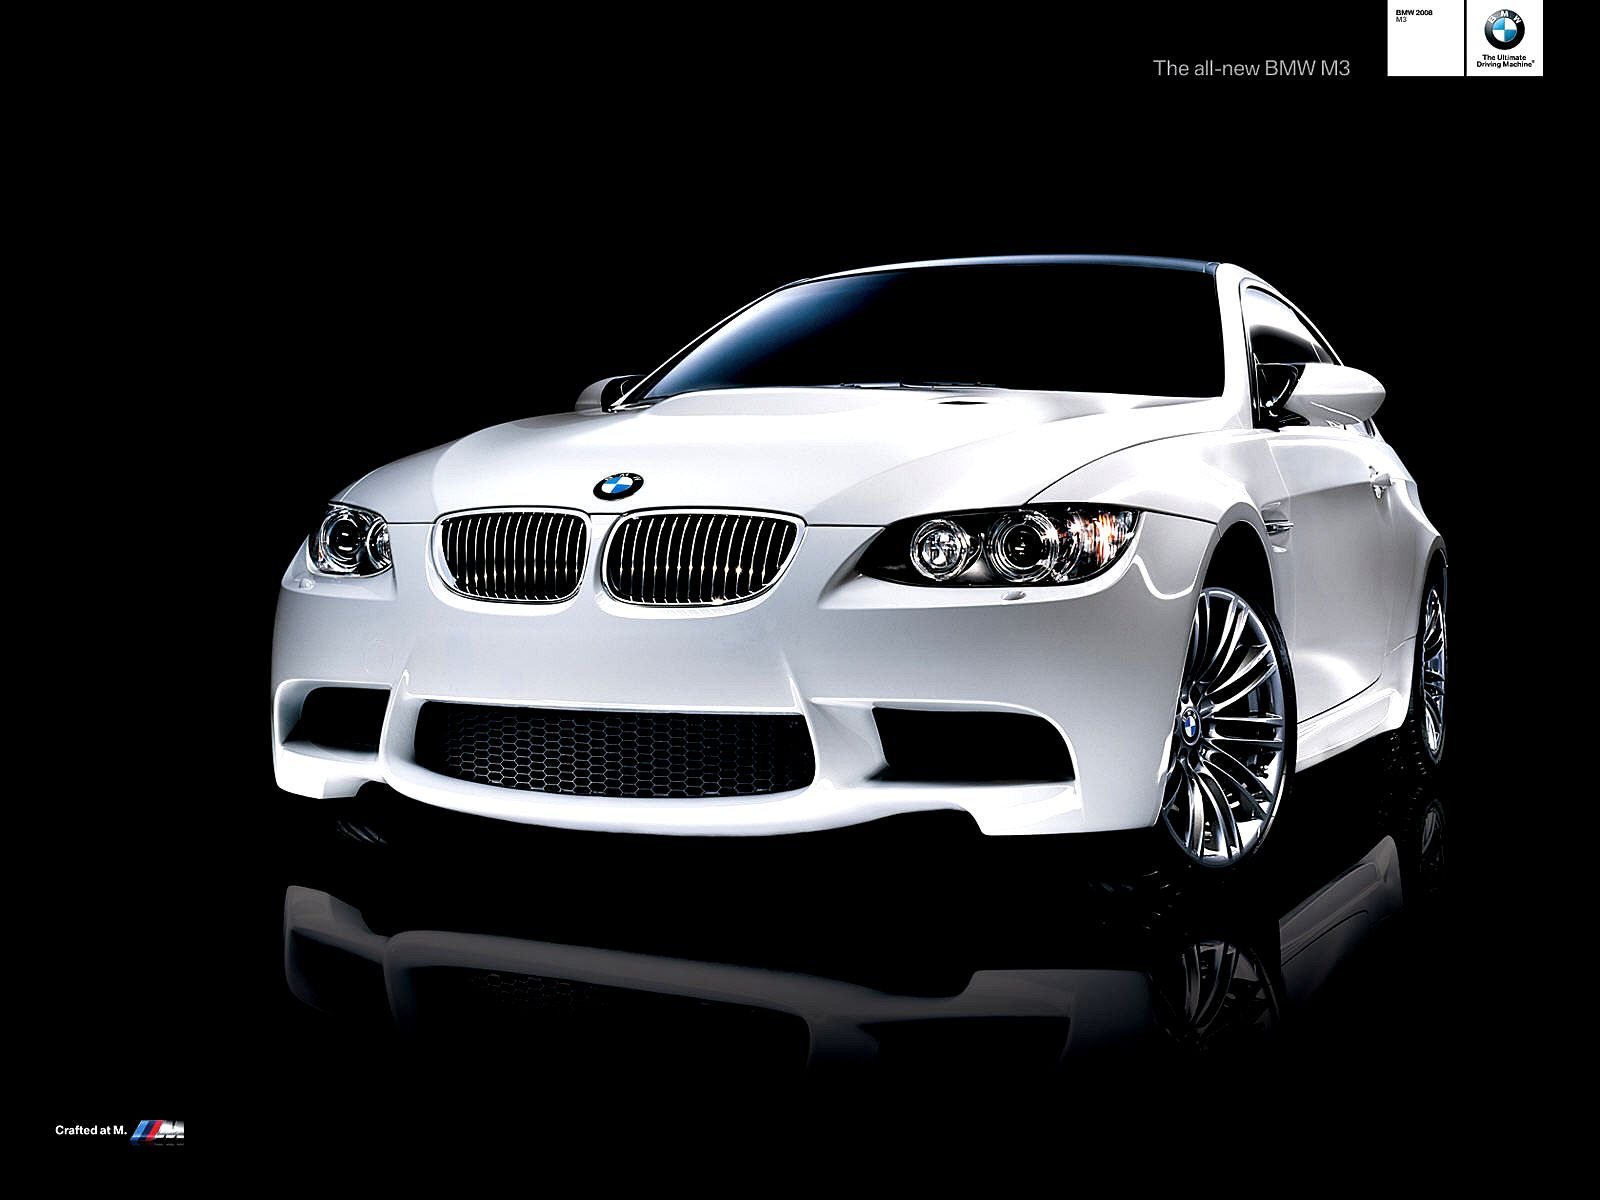 Download image Description From Bmw Cars Hd Wallpaper PC, Android